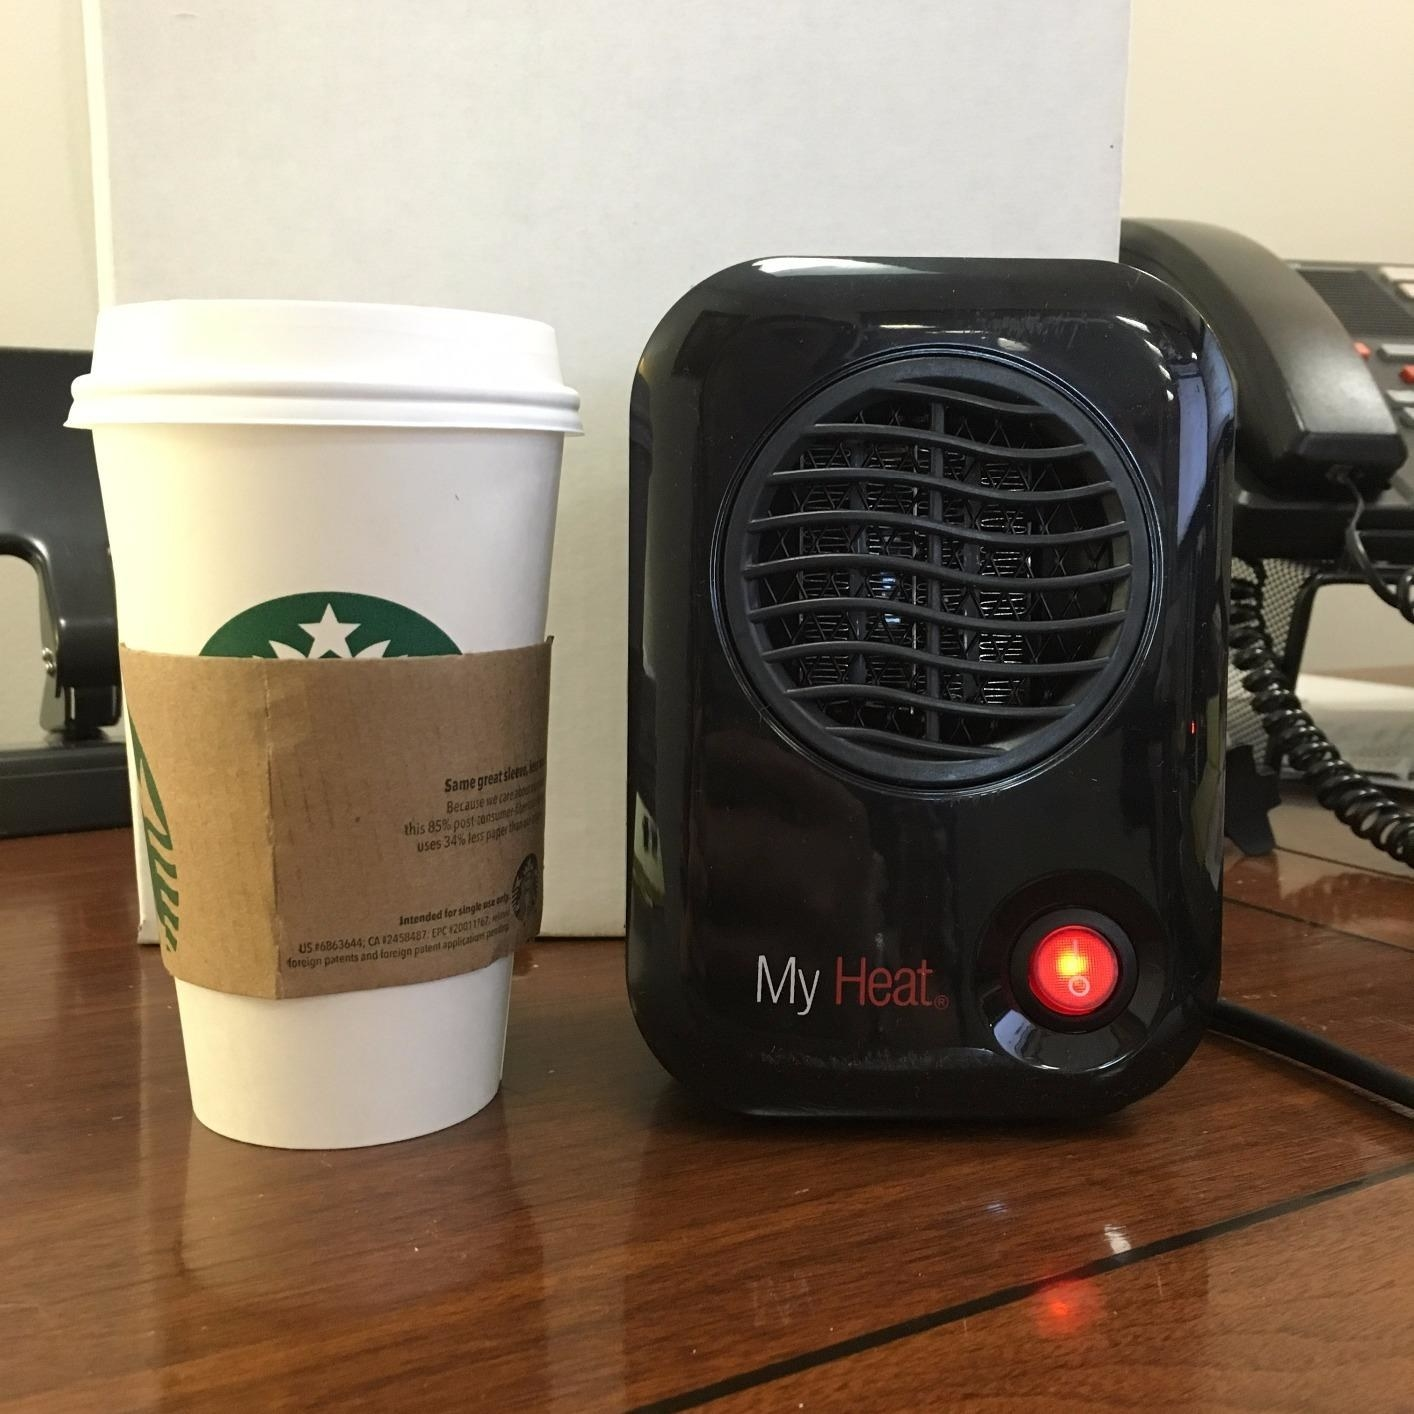 A reviewer showing their small black heater, about the same height as a starbucks coffee cup